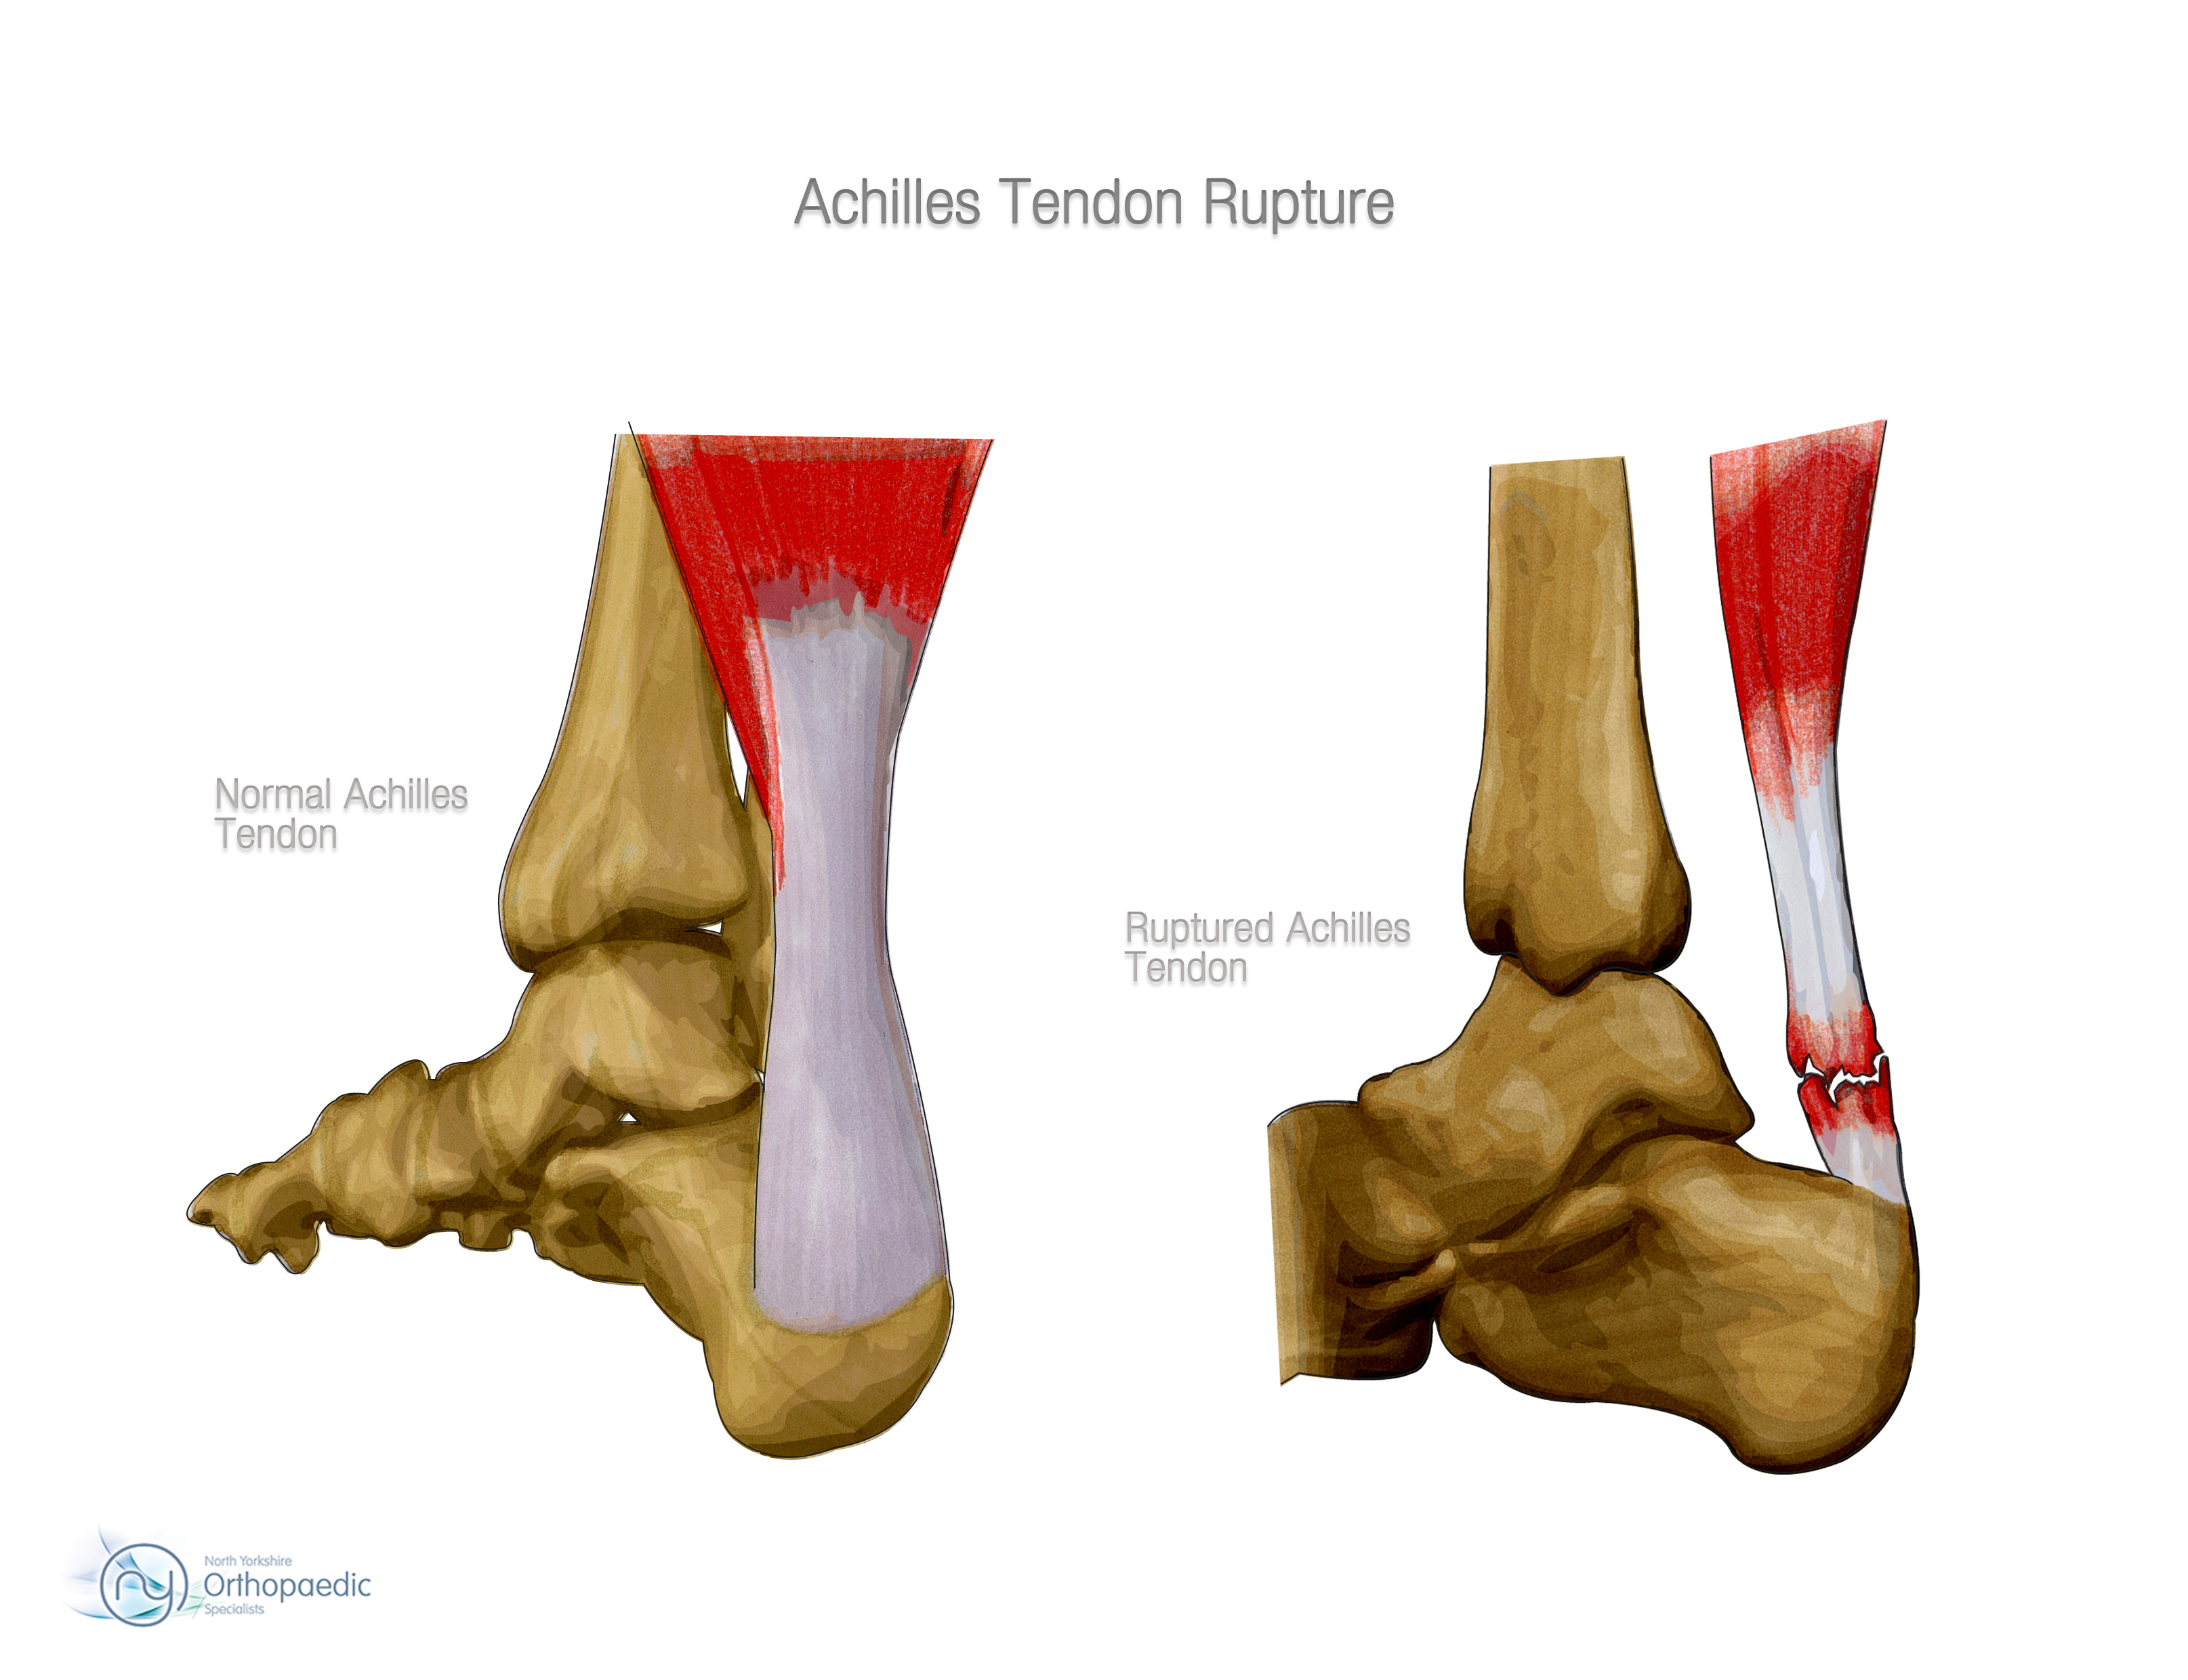 Achilles tendon rupture physical therapy - Achilles Rupture